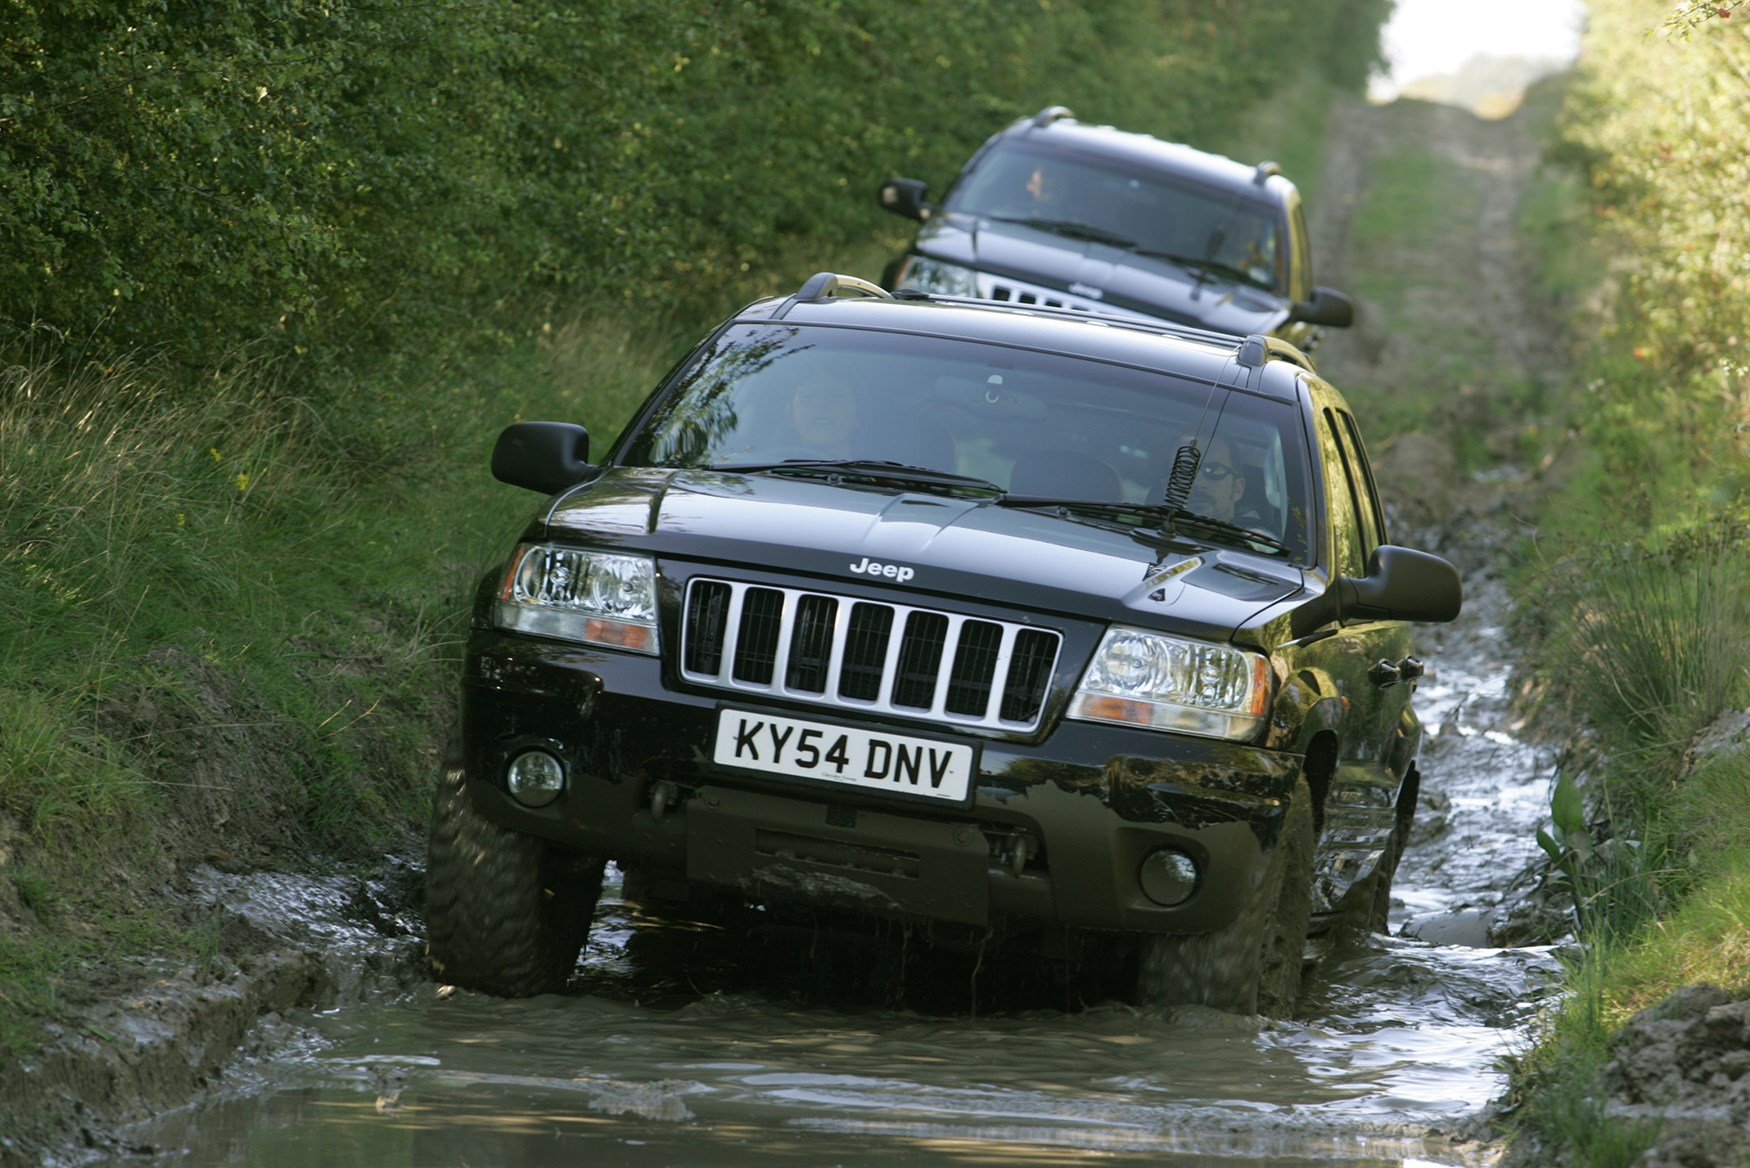 Jeep Grand Cherokee >> Jeep Grand Cherokee Station Wagon Review (1999 - 2004) | Parkers